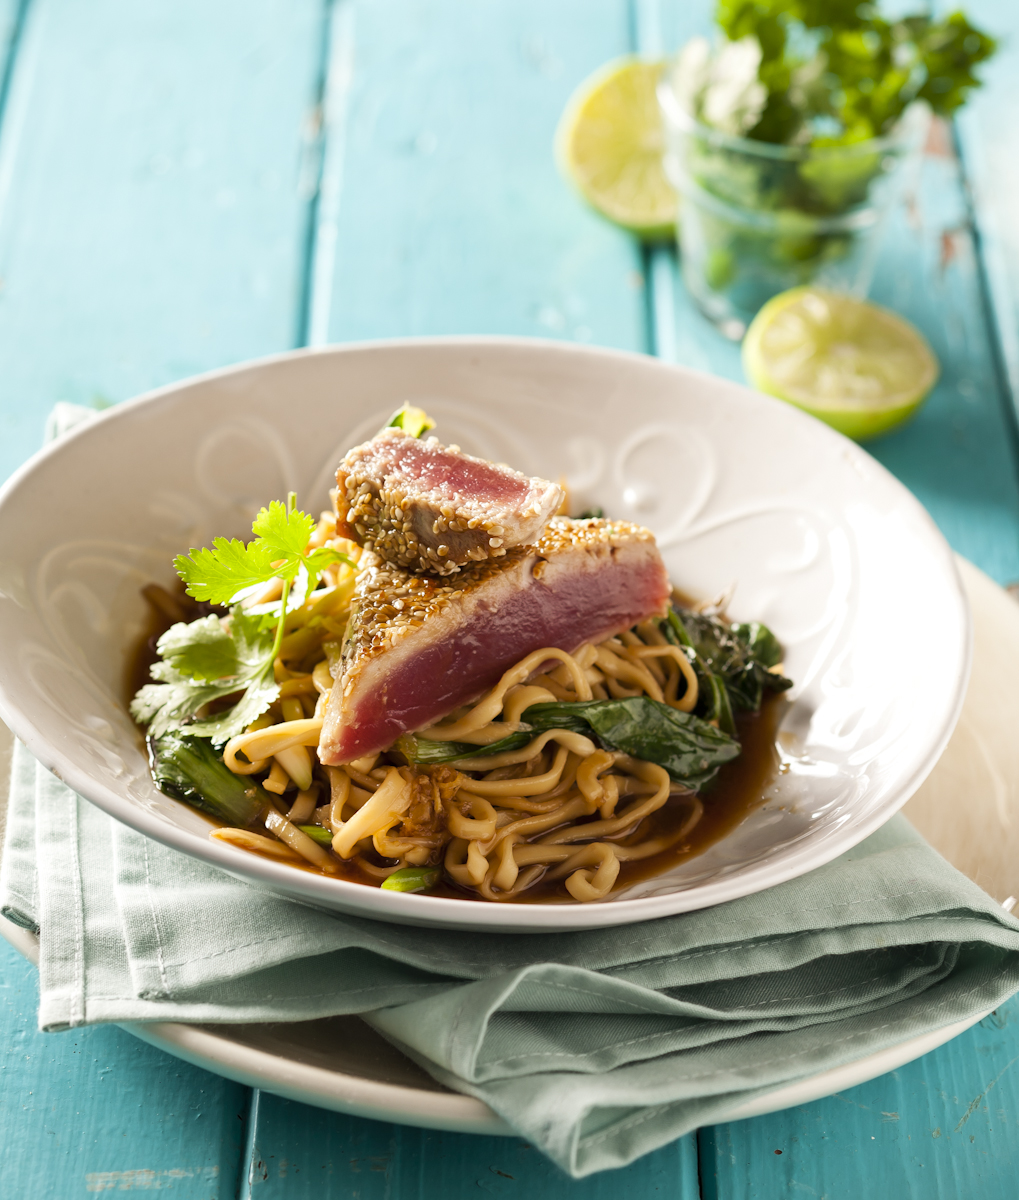 Seared tuna with noodles.